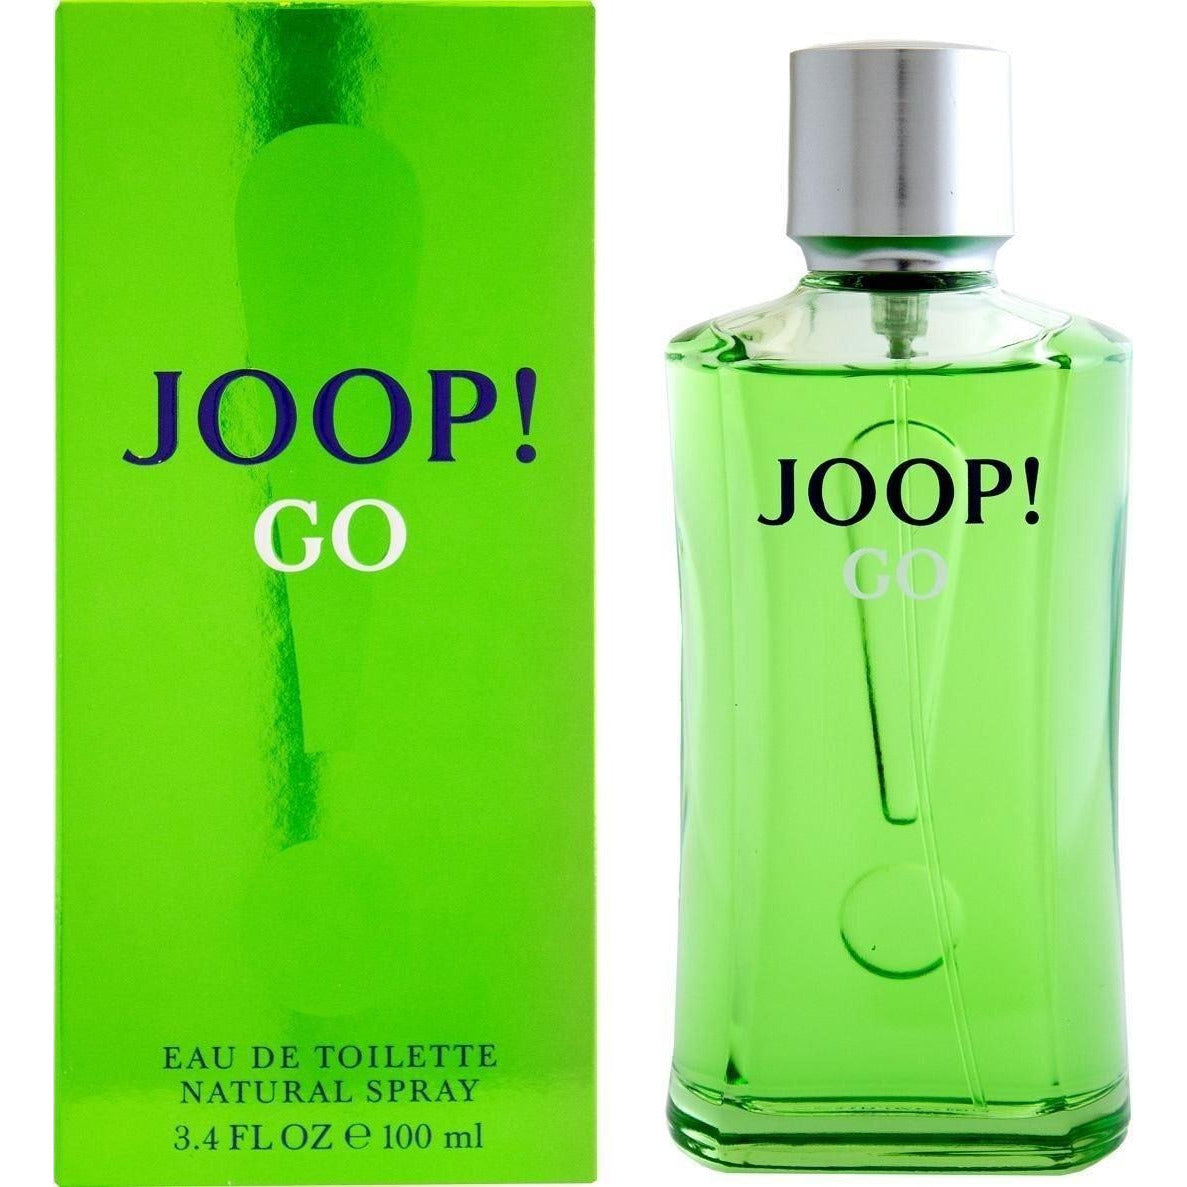 joop-go-men-cologne-spray-edt-3-4-3-3-oz-new-in-box